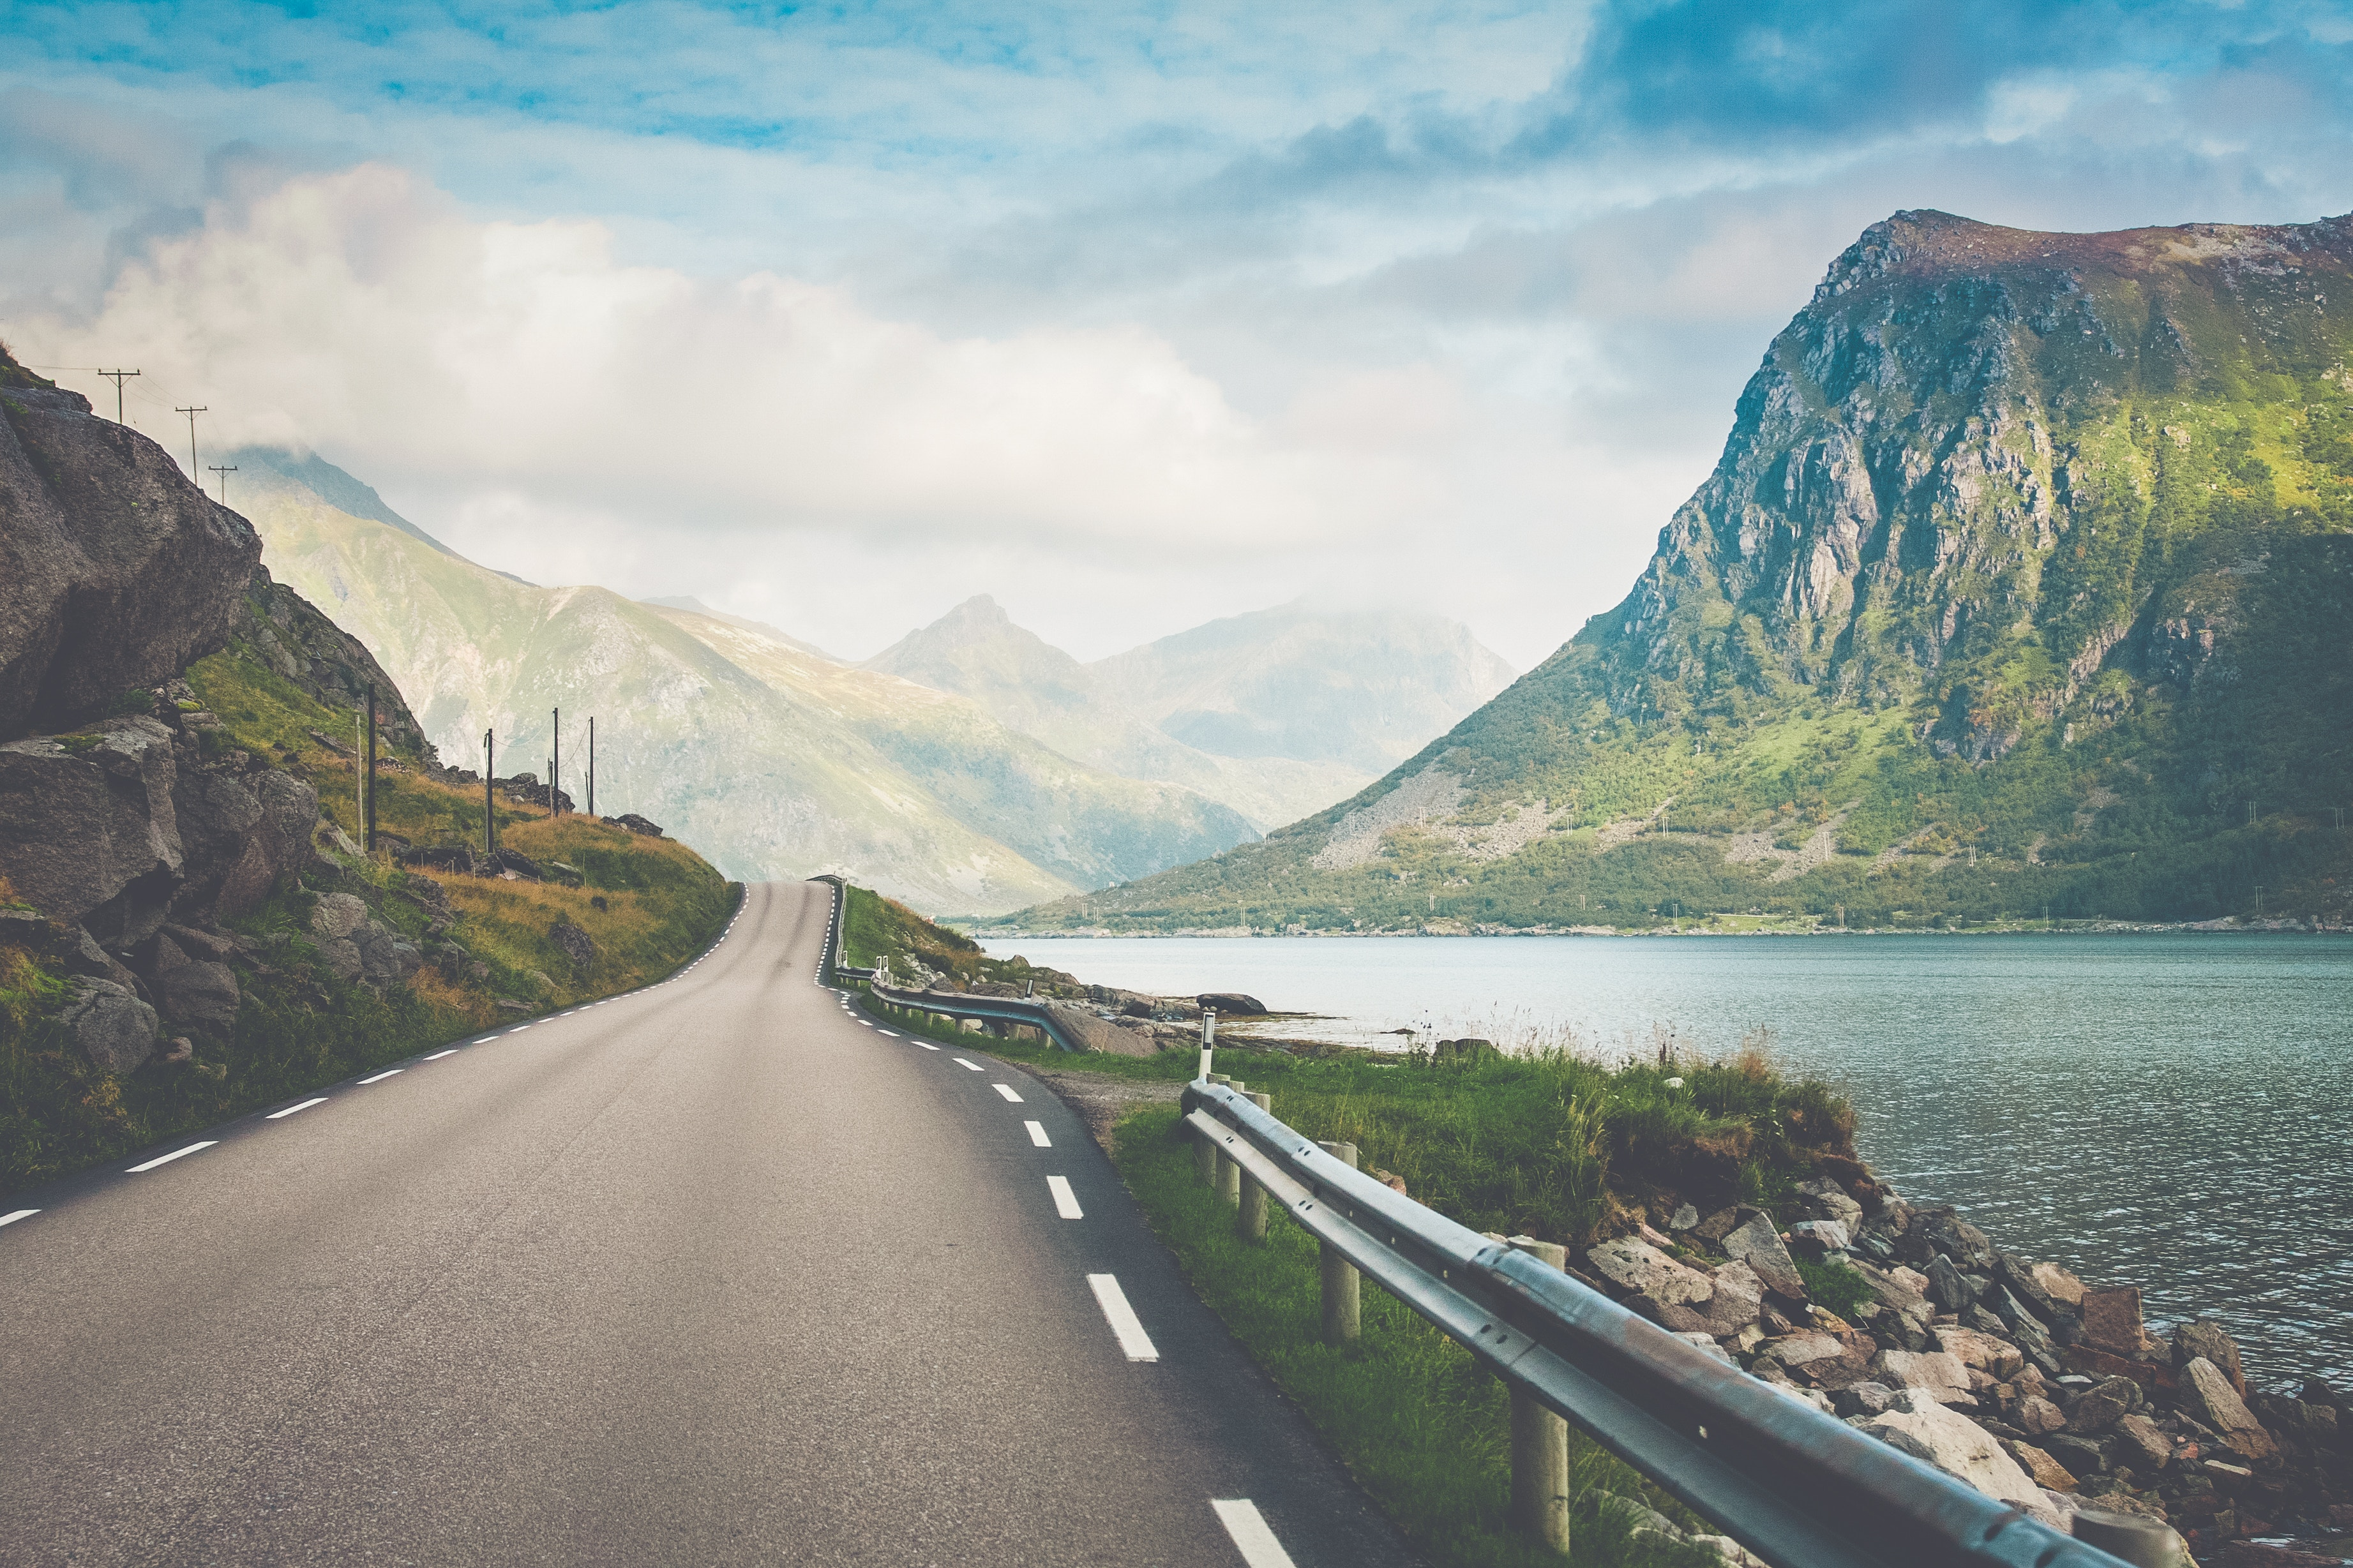 epic road through the mountains in Lofoten, Norway